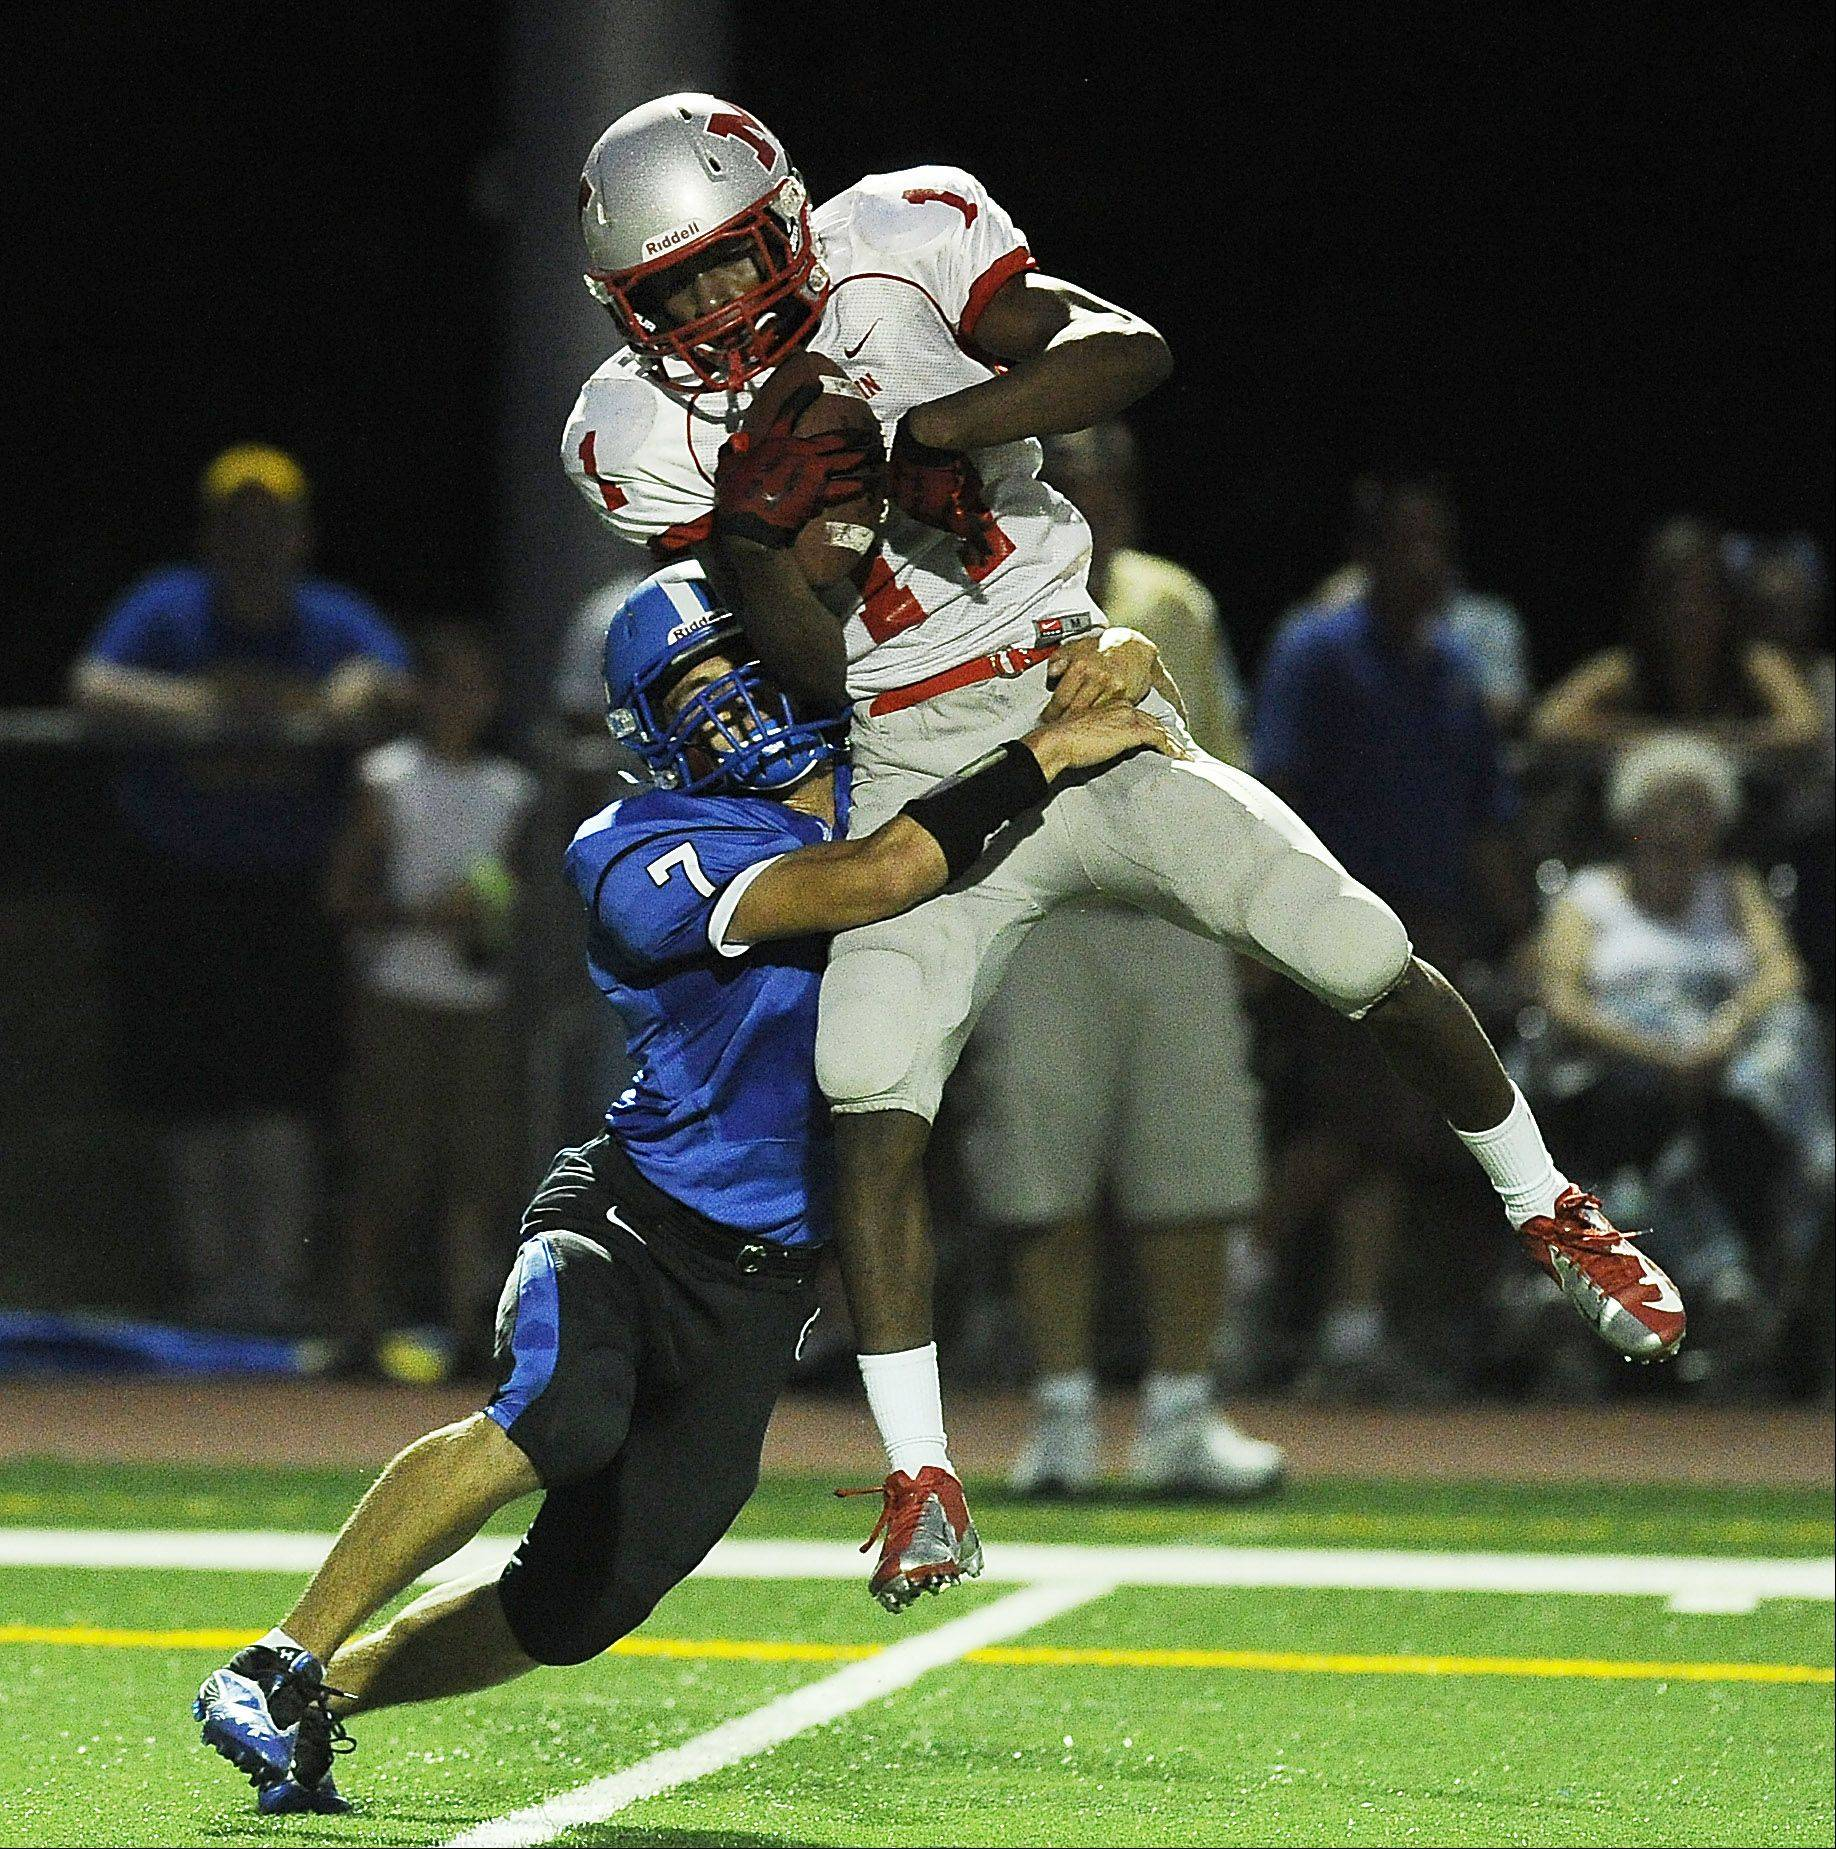 Mundelein's Chance Lindsey hauls in a second-quarter reception under pressure from Wheeling's Michael Yoshino.